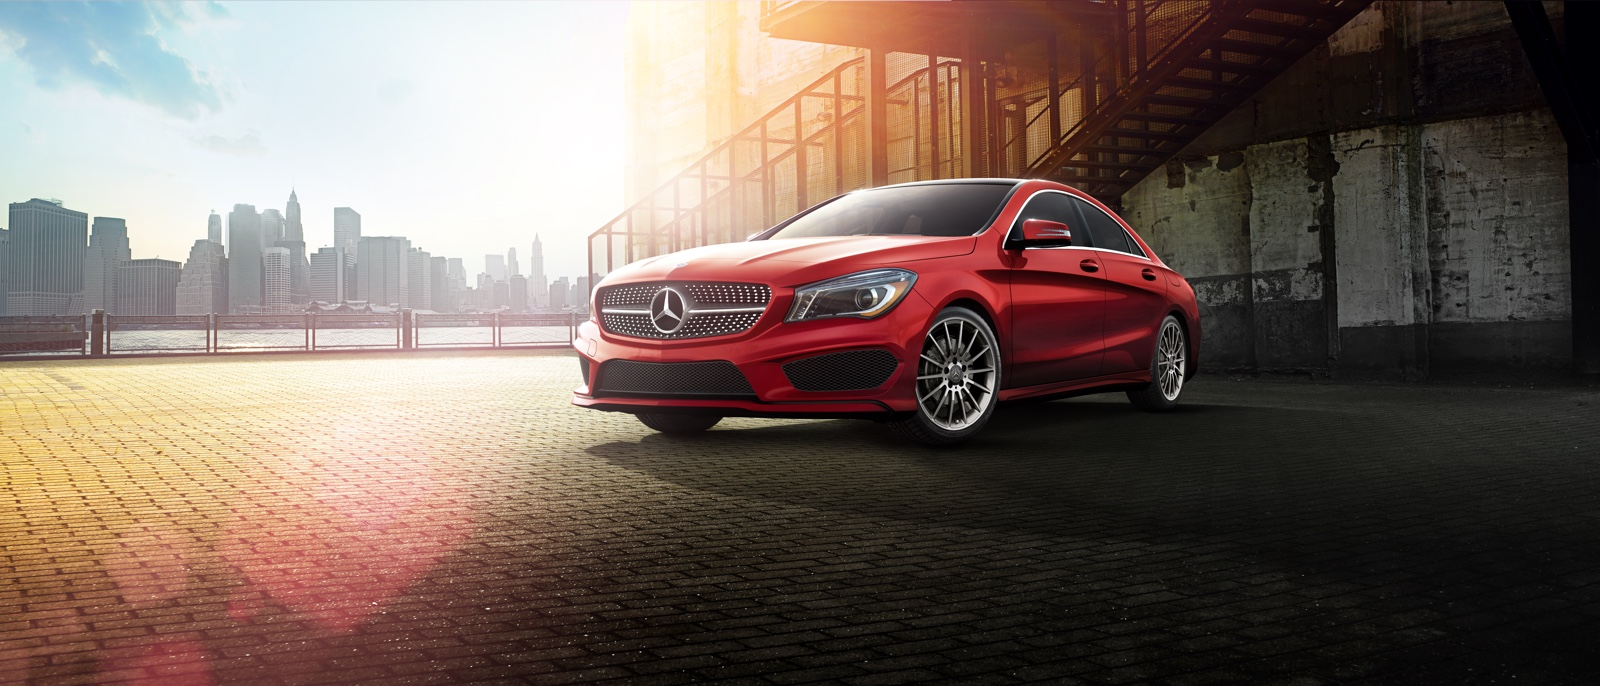 2018 mercedes benz cla coupe unbelievable luxury for Mercedes benz cla 2018 price